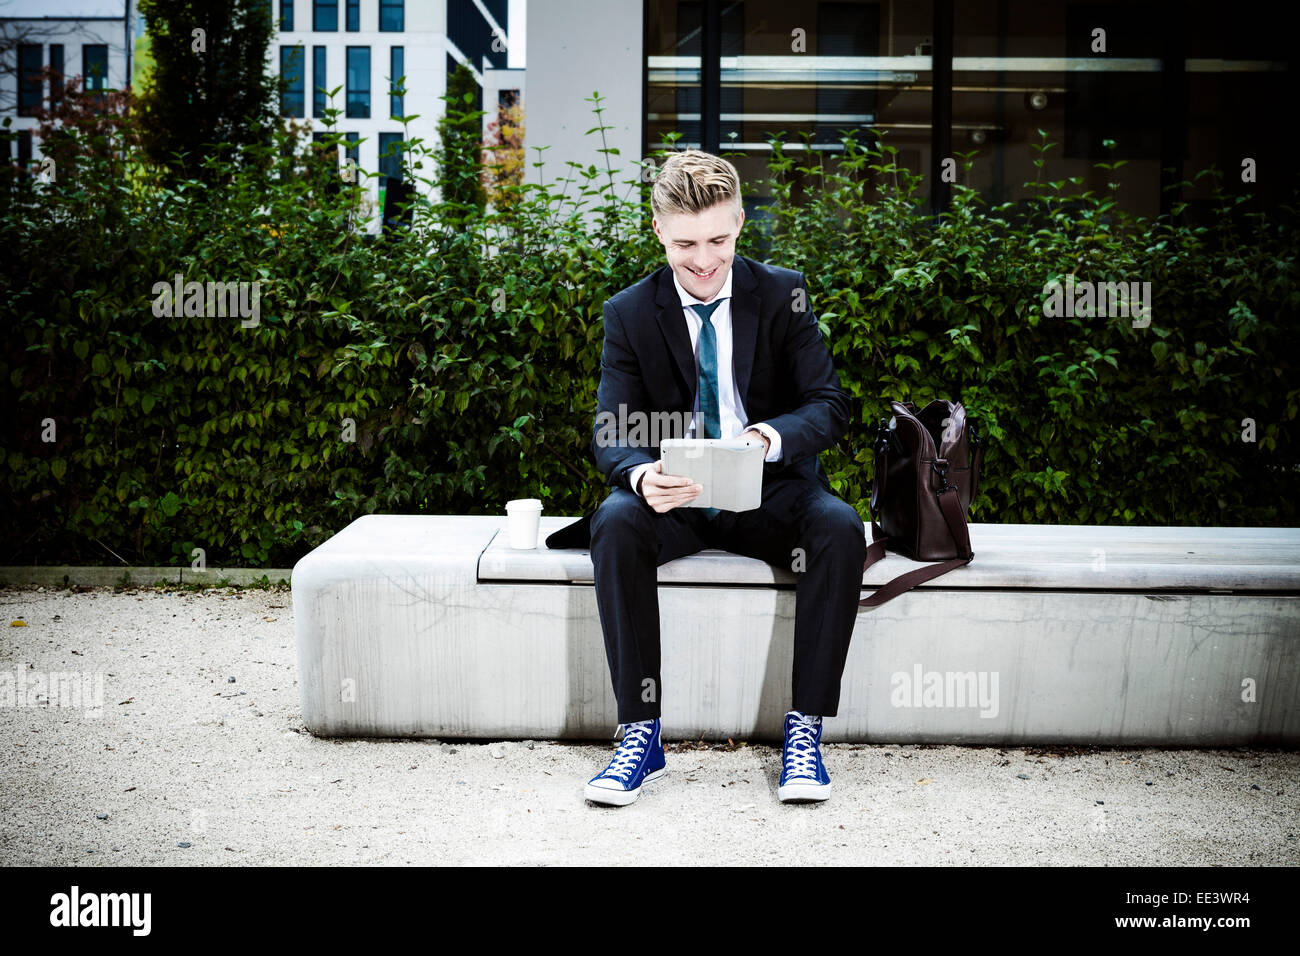 Young businessman using digital tablet outdoors, Munich, Bavière, Allemagne Photo Stock